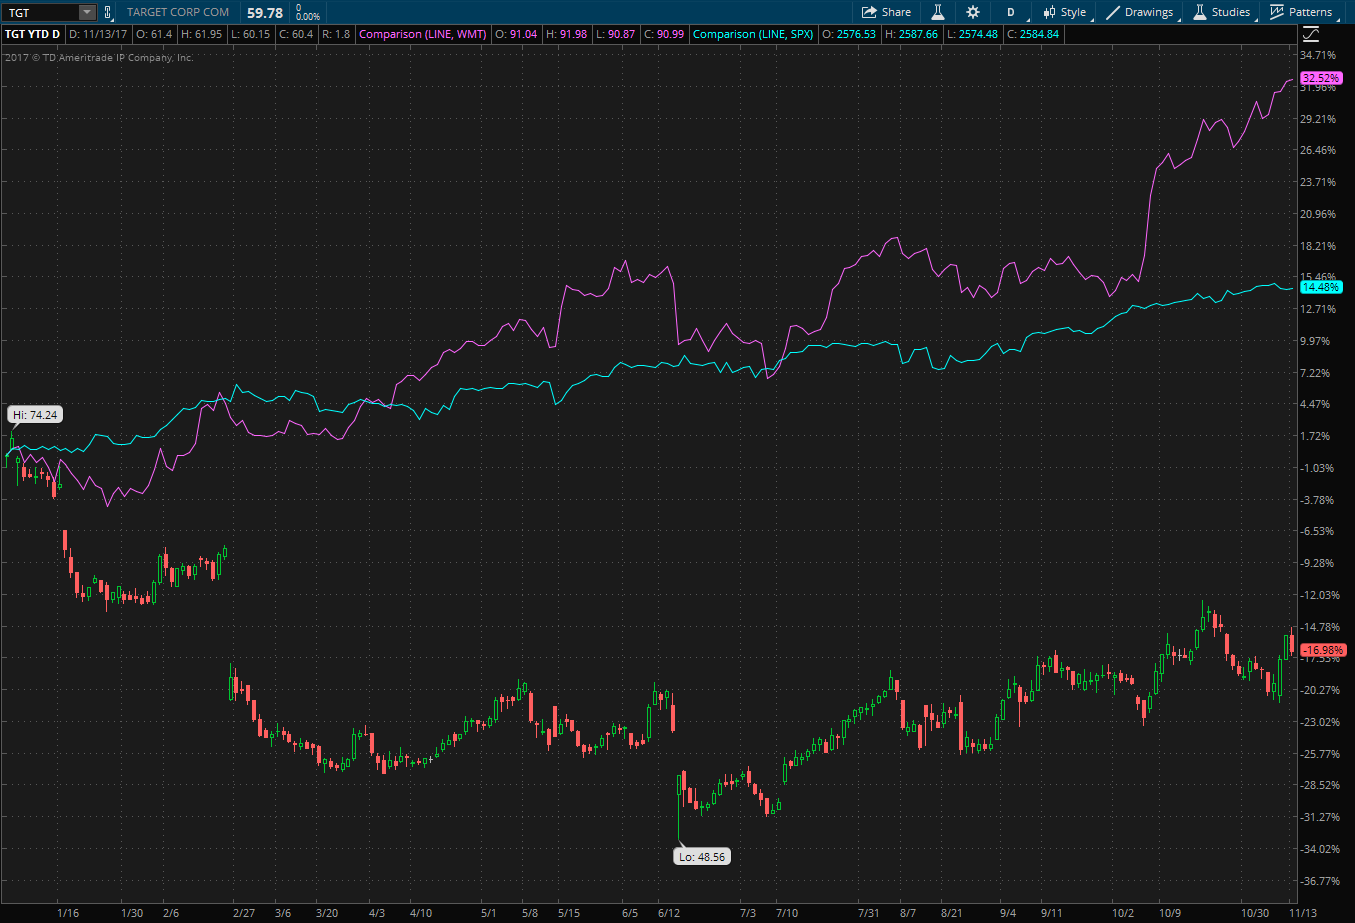 Stock chart showing YTD performance of Target (TGT), Wal-Mart (WMT) and the S&P 500